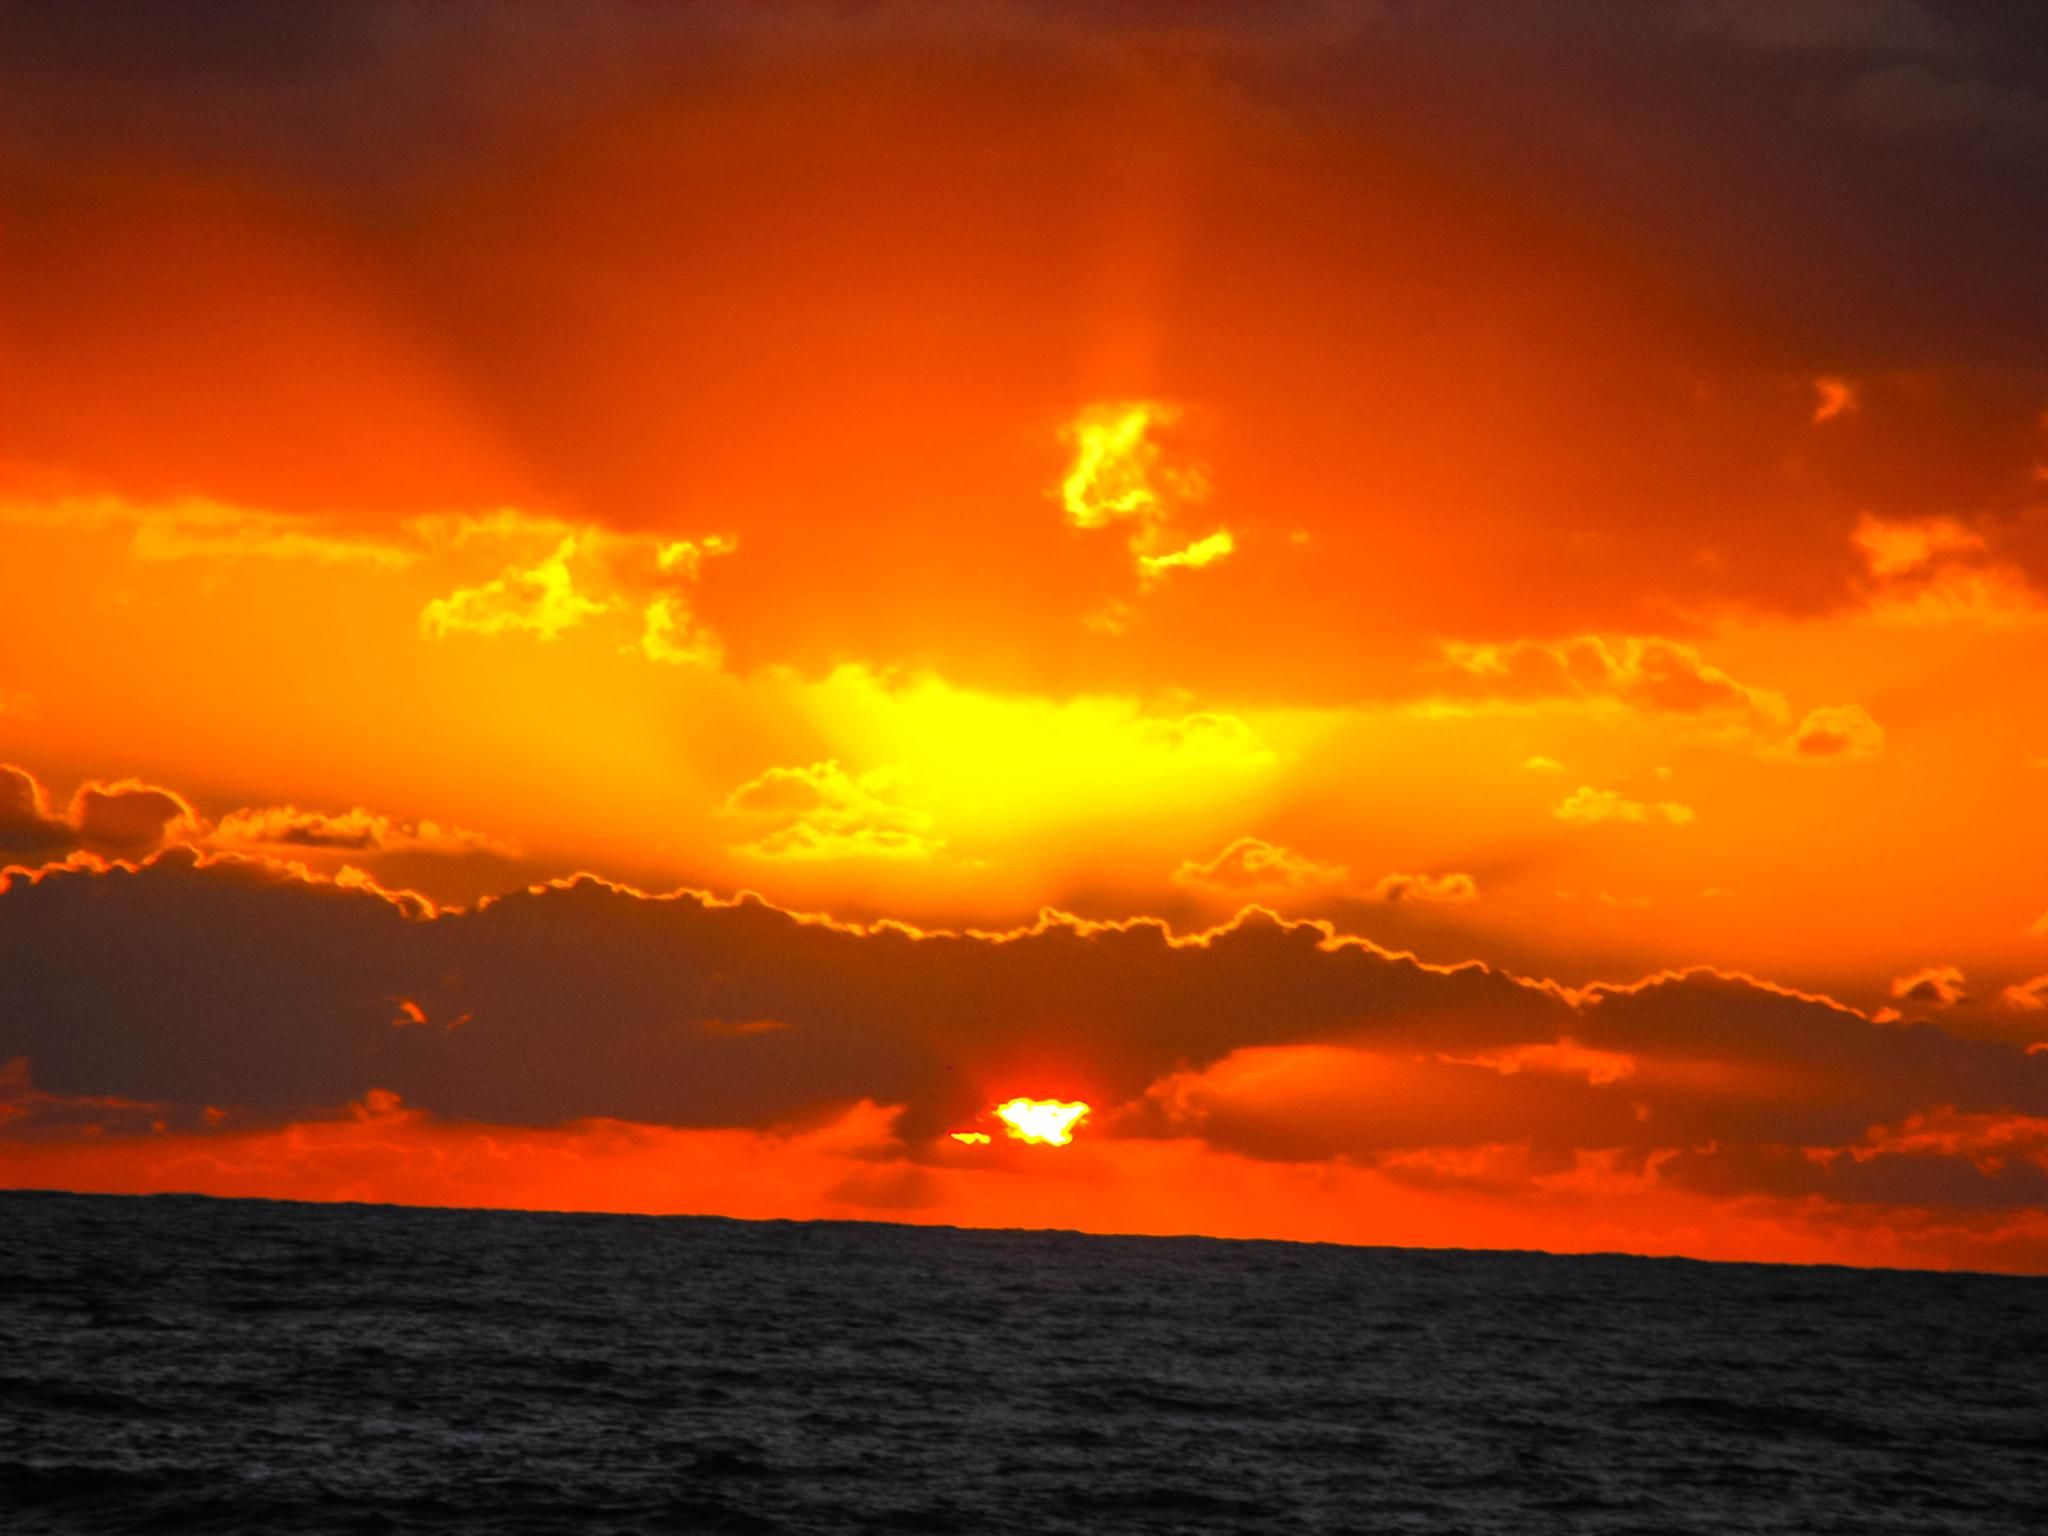 Cyprus sunset by Karlos